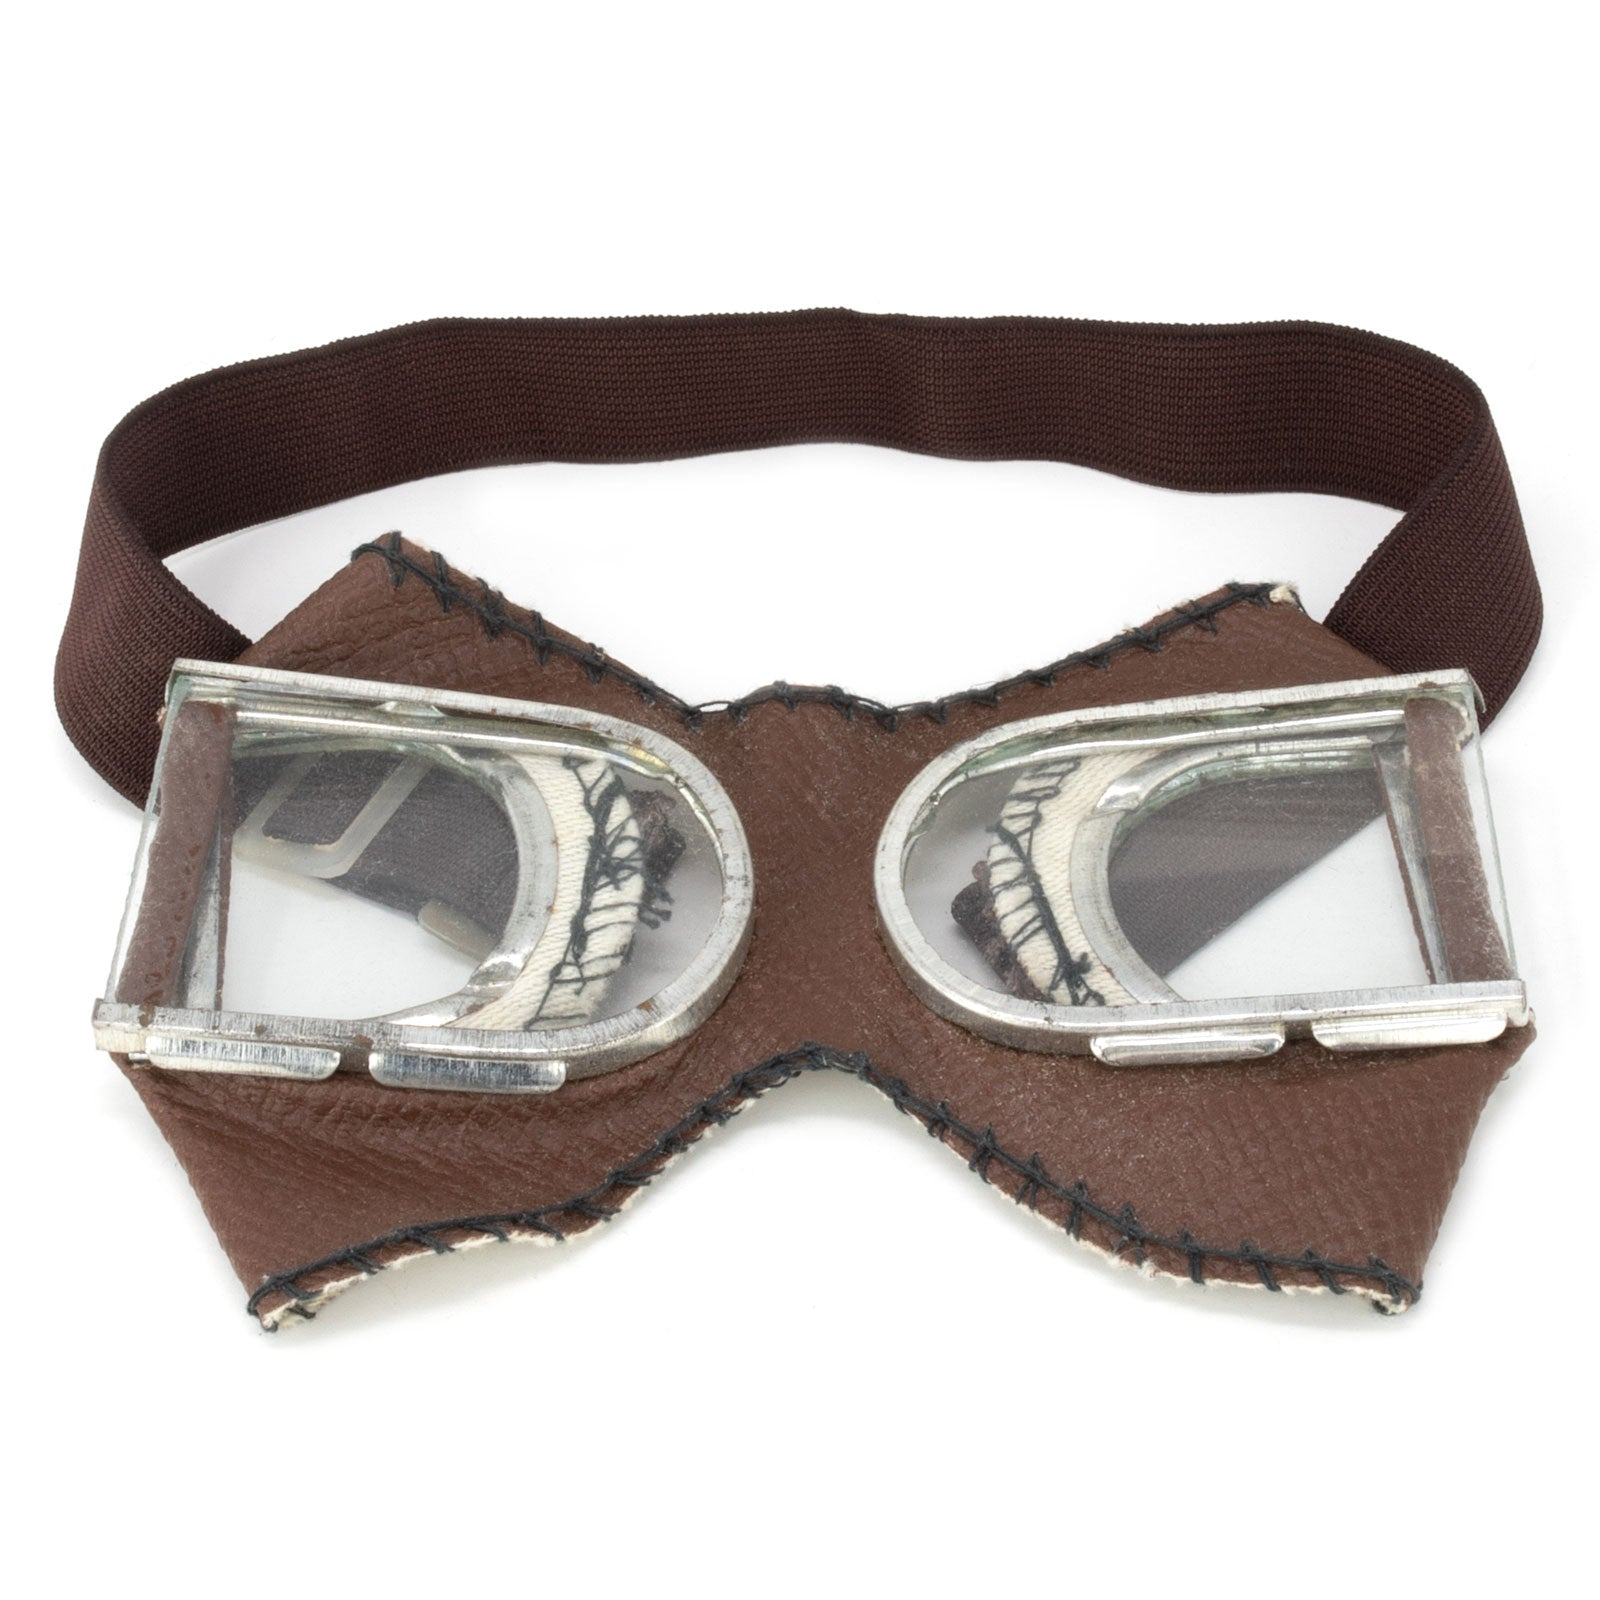 These Russian Military Goggles Had Real Glass Panels